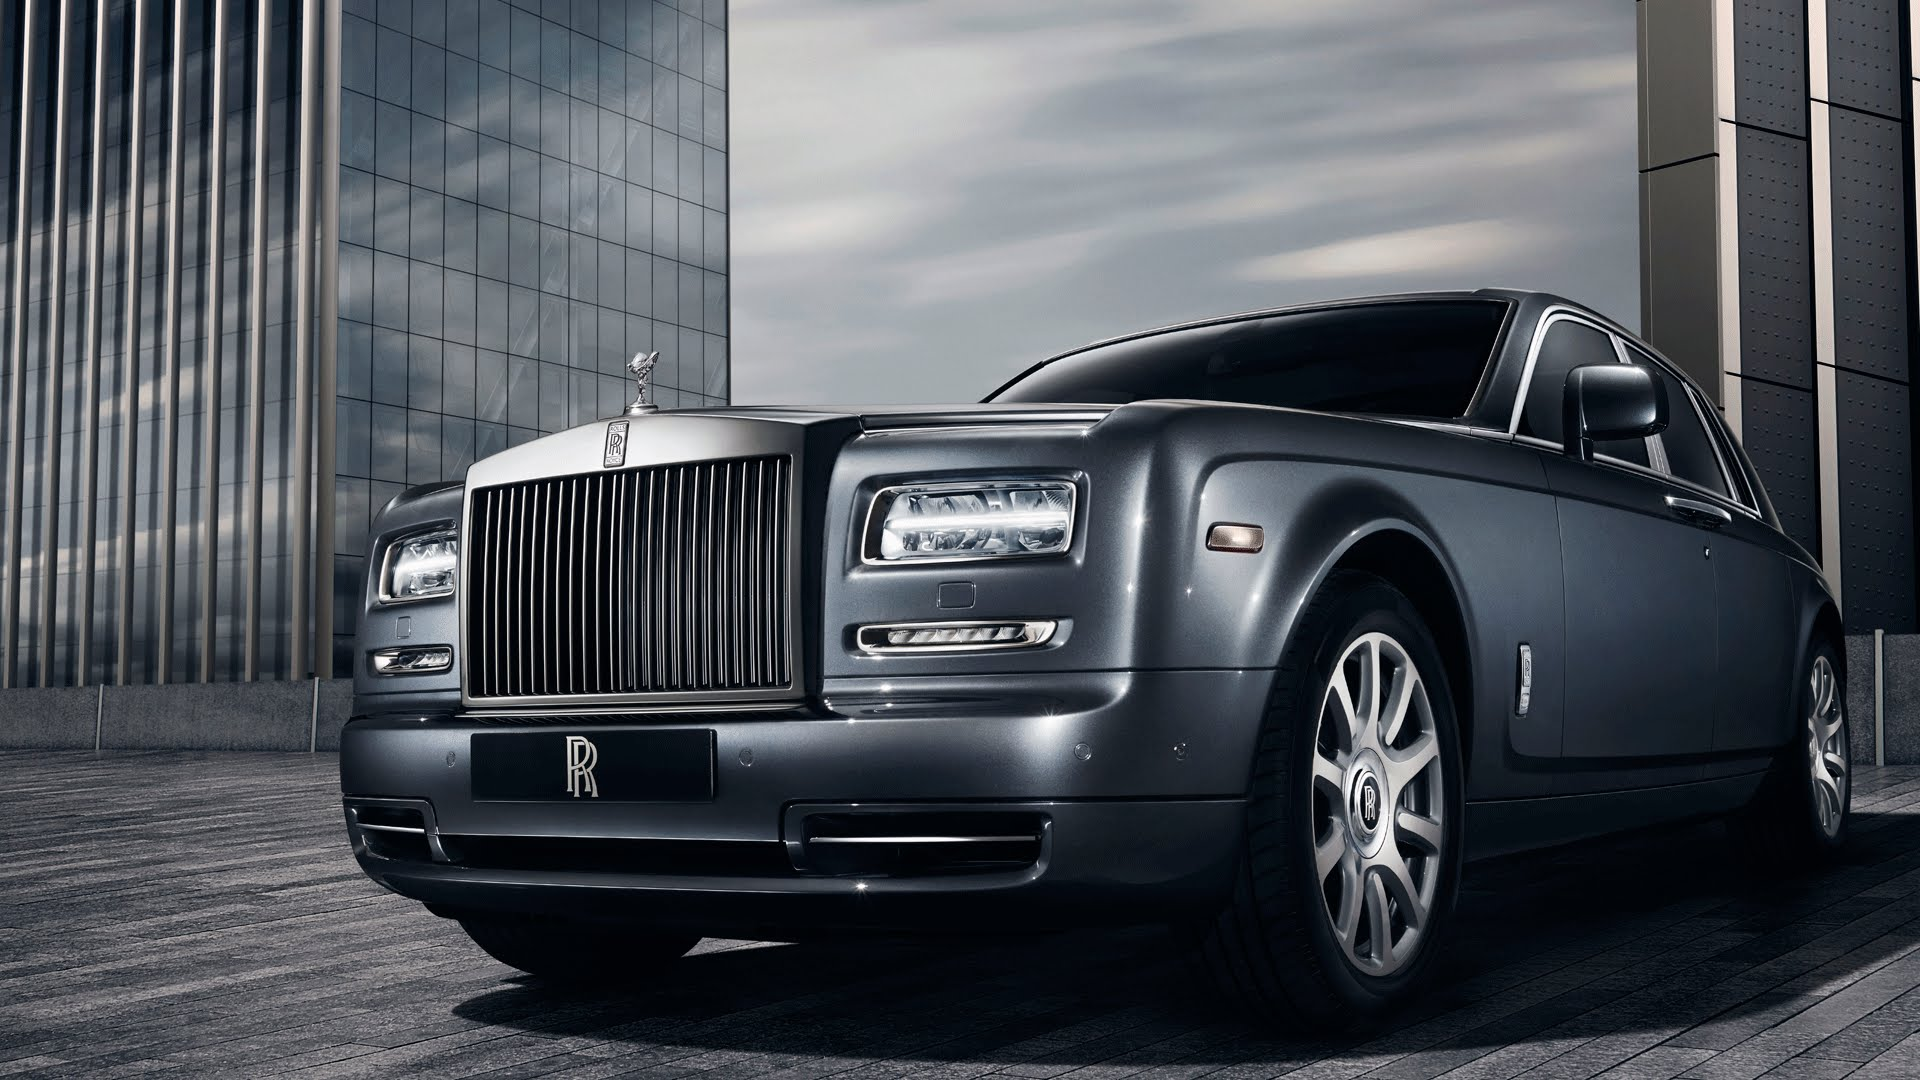 2015 Rolls Royce Phantom #3